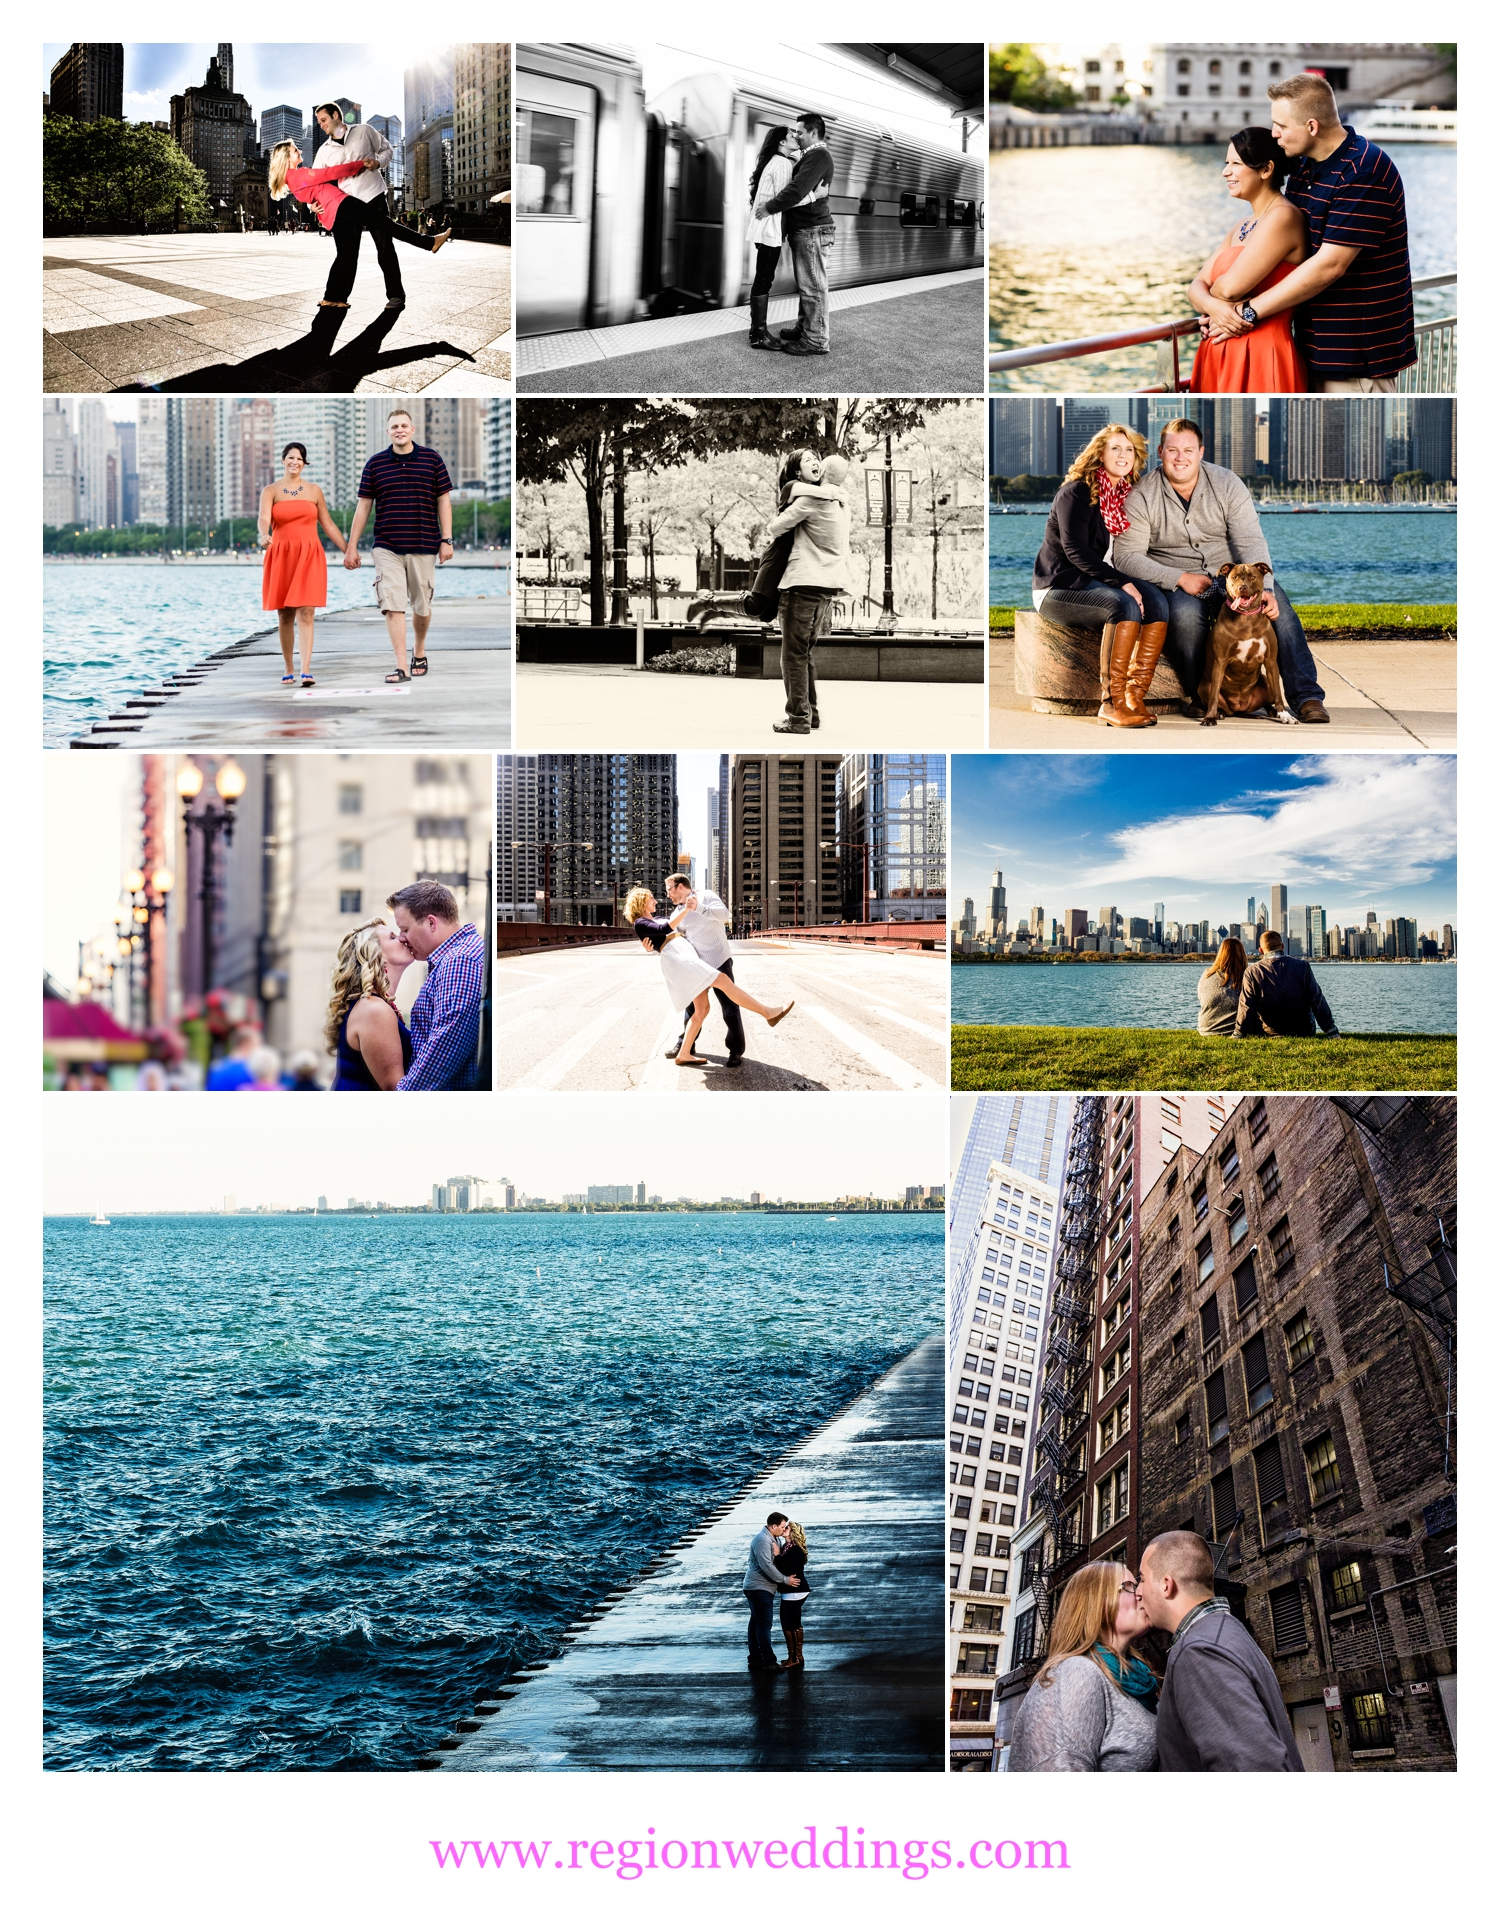 Various images of Chicago engagement sessions.